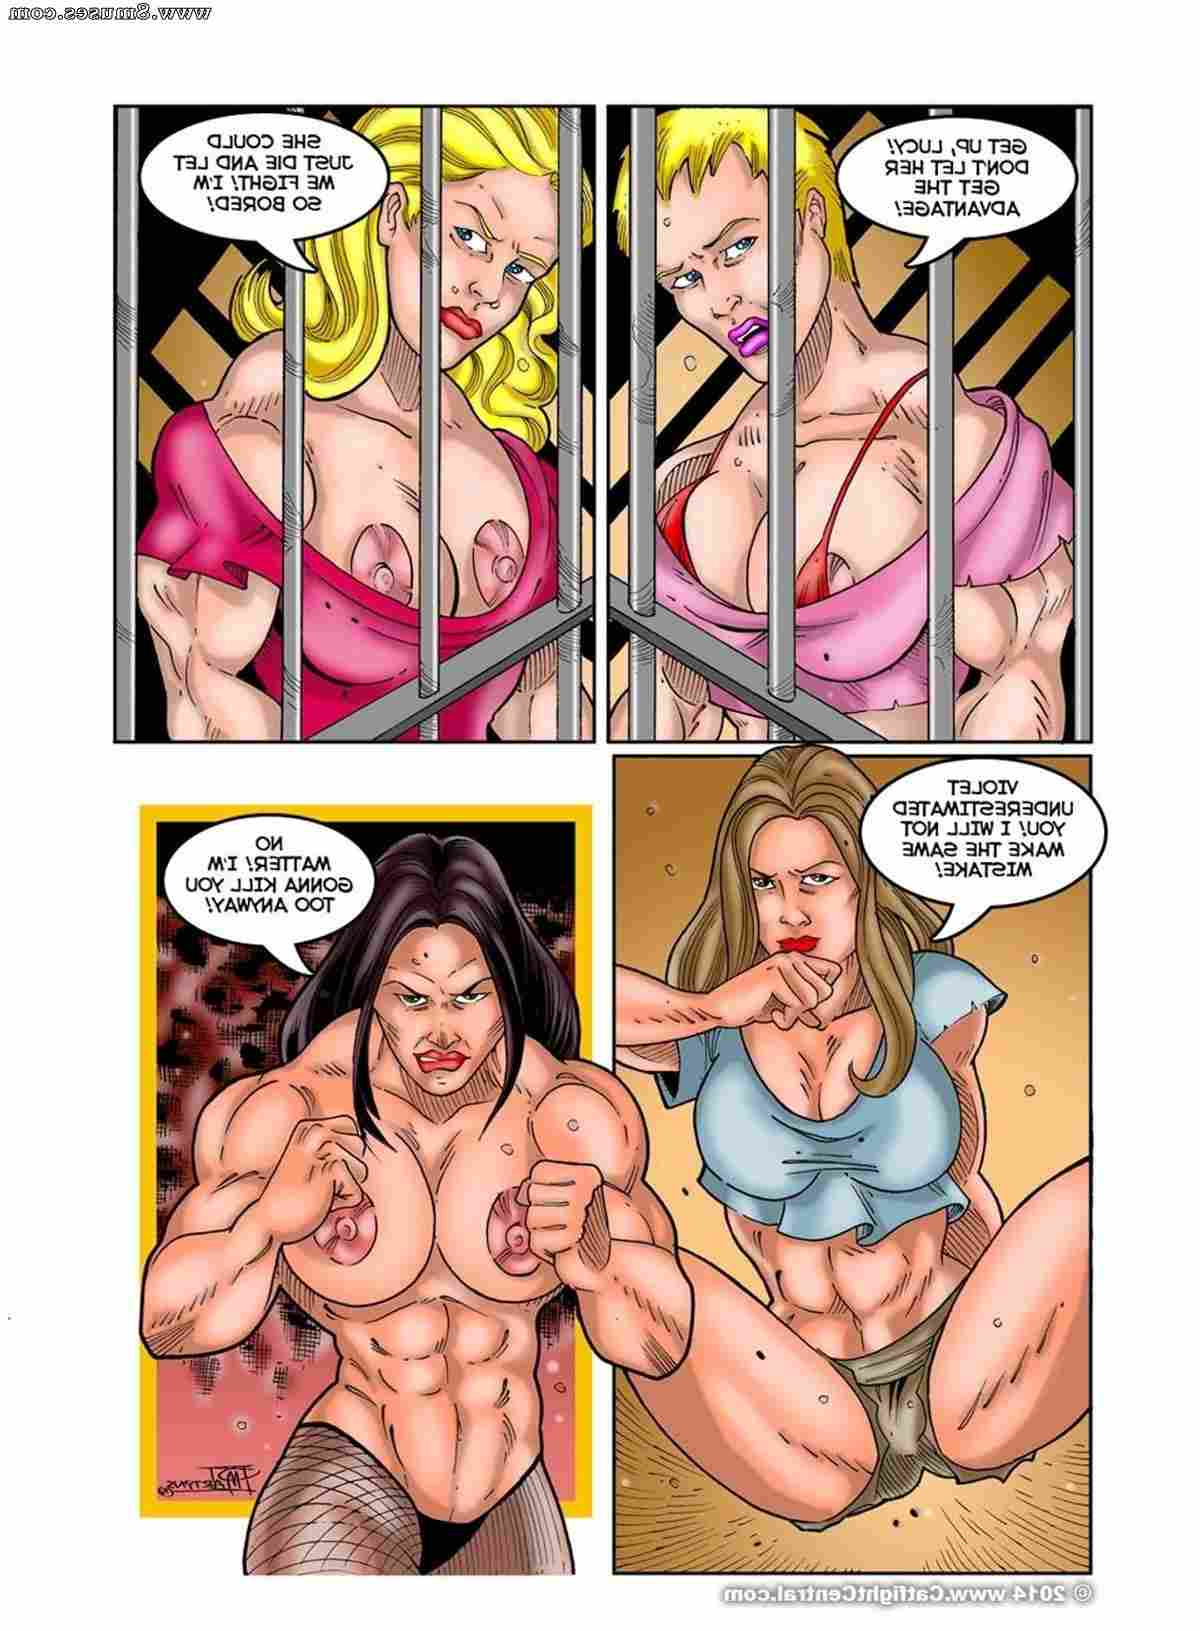 Central-Comics/Catfight-Central/Prison-Bitches Prison_Bitches__8muses_-_Sex_and_Porn_Comics_69.jpg